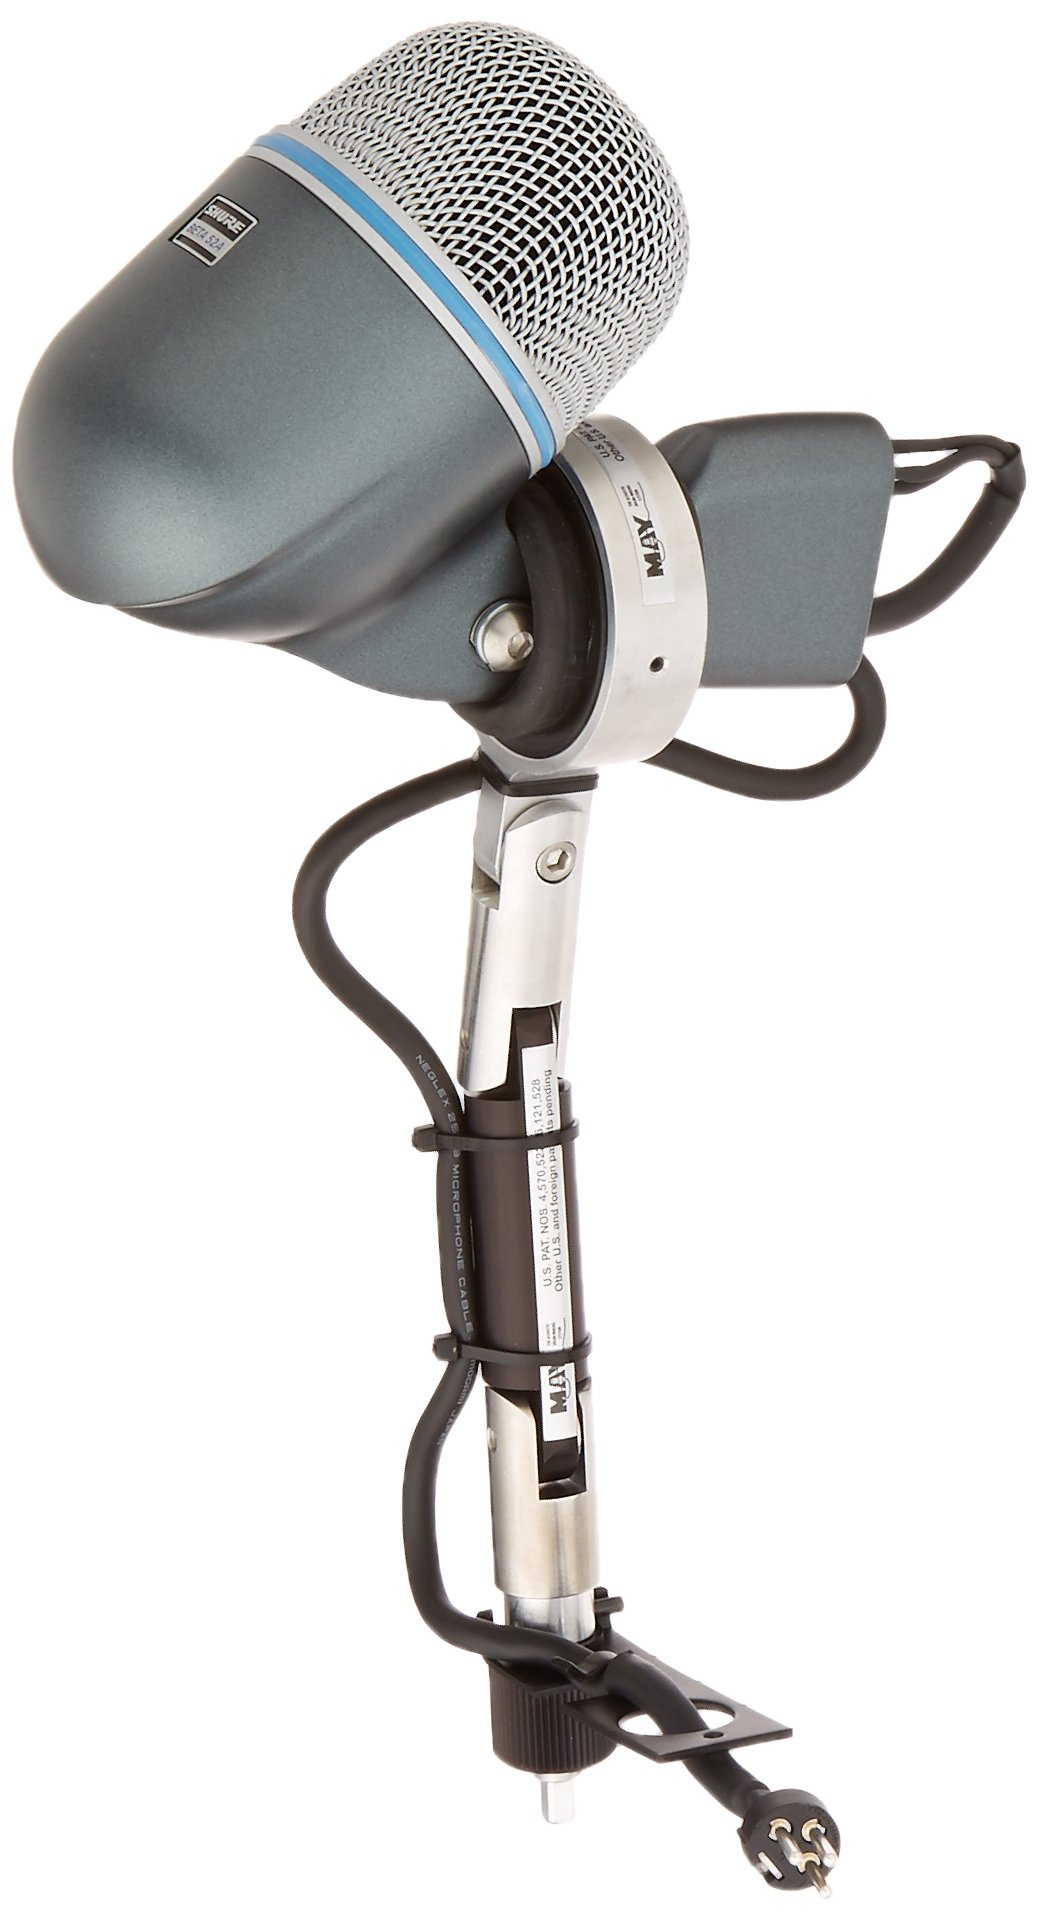 DW Drum Workshop Shure Beta 52 MAY Internal Microphone System for Bass Drums